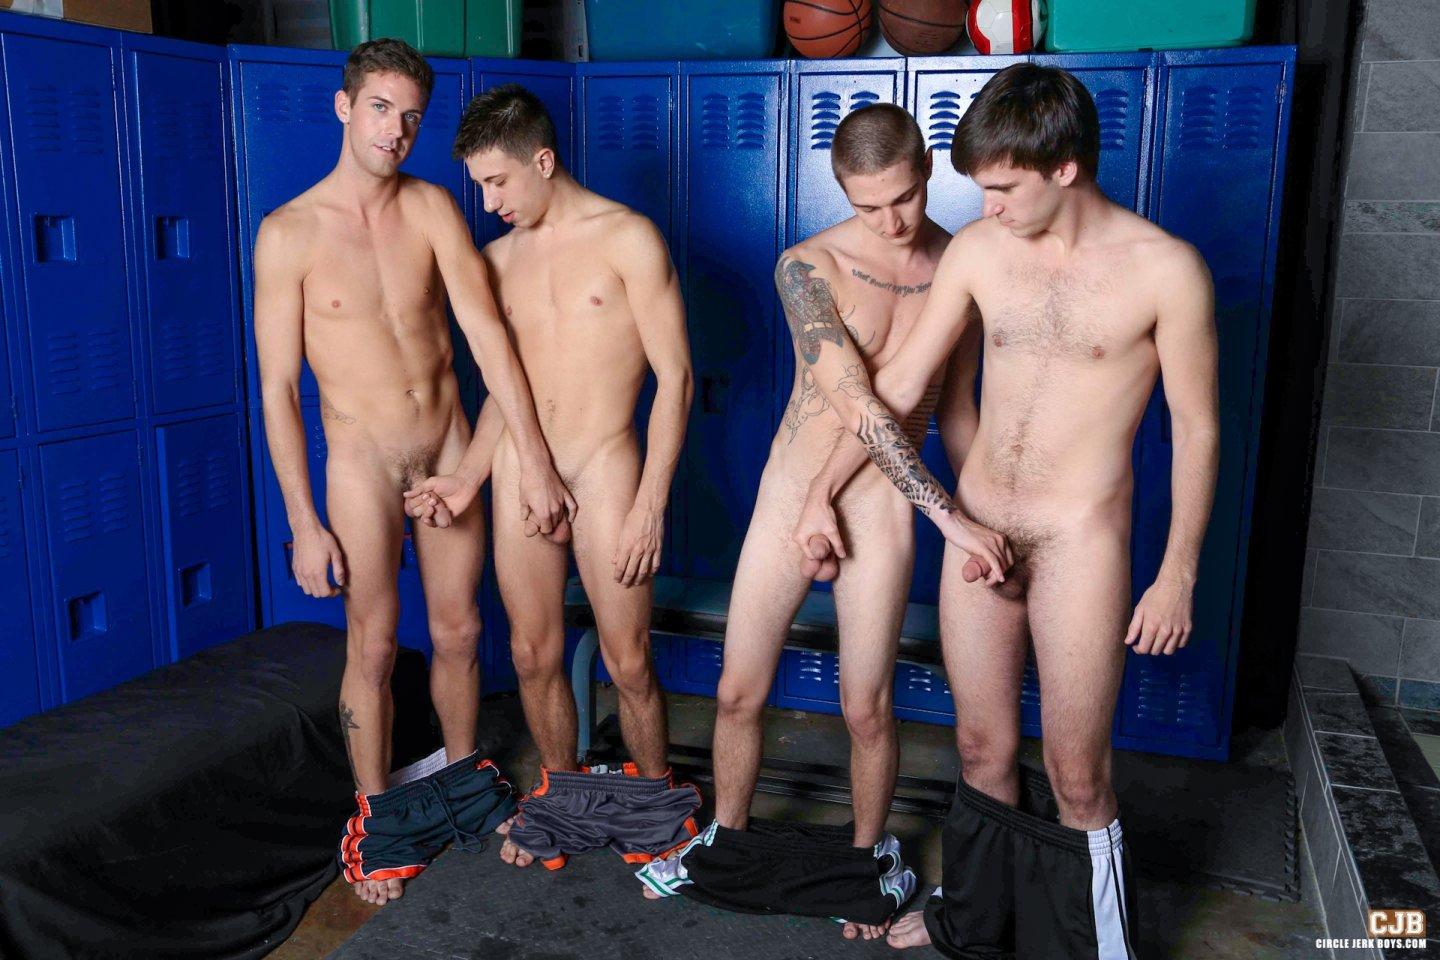 Circle jerk Amateur gay twink